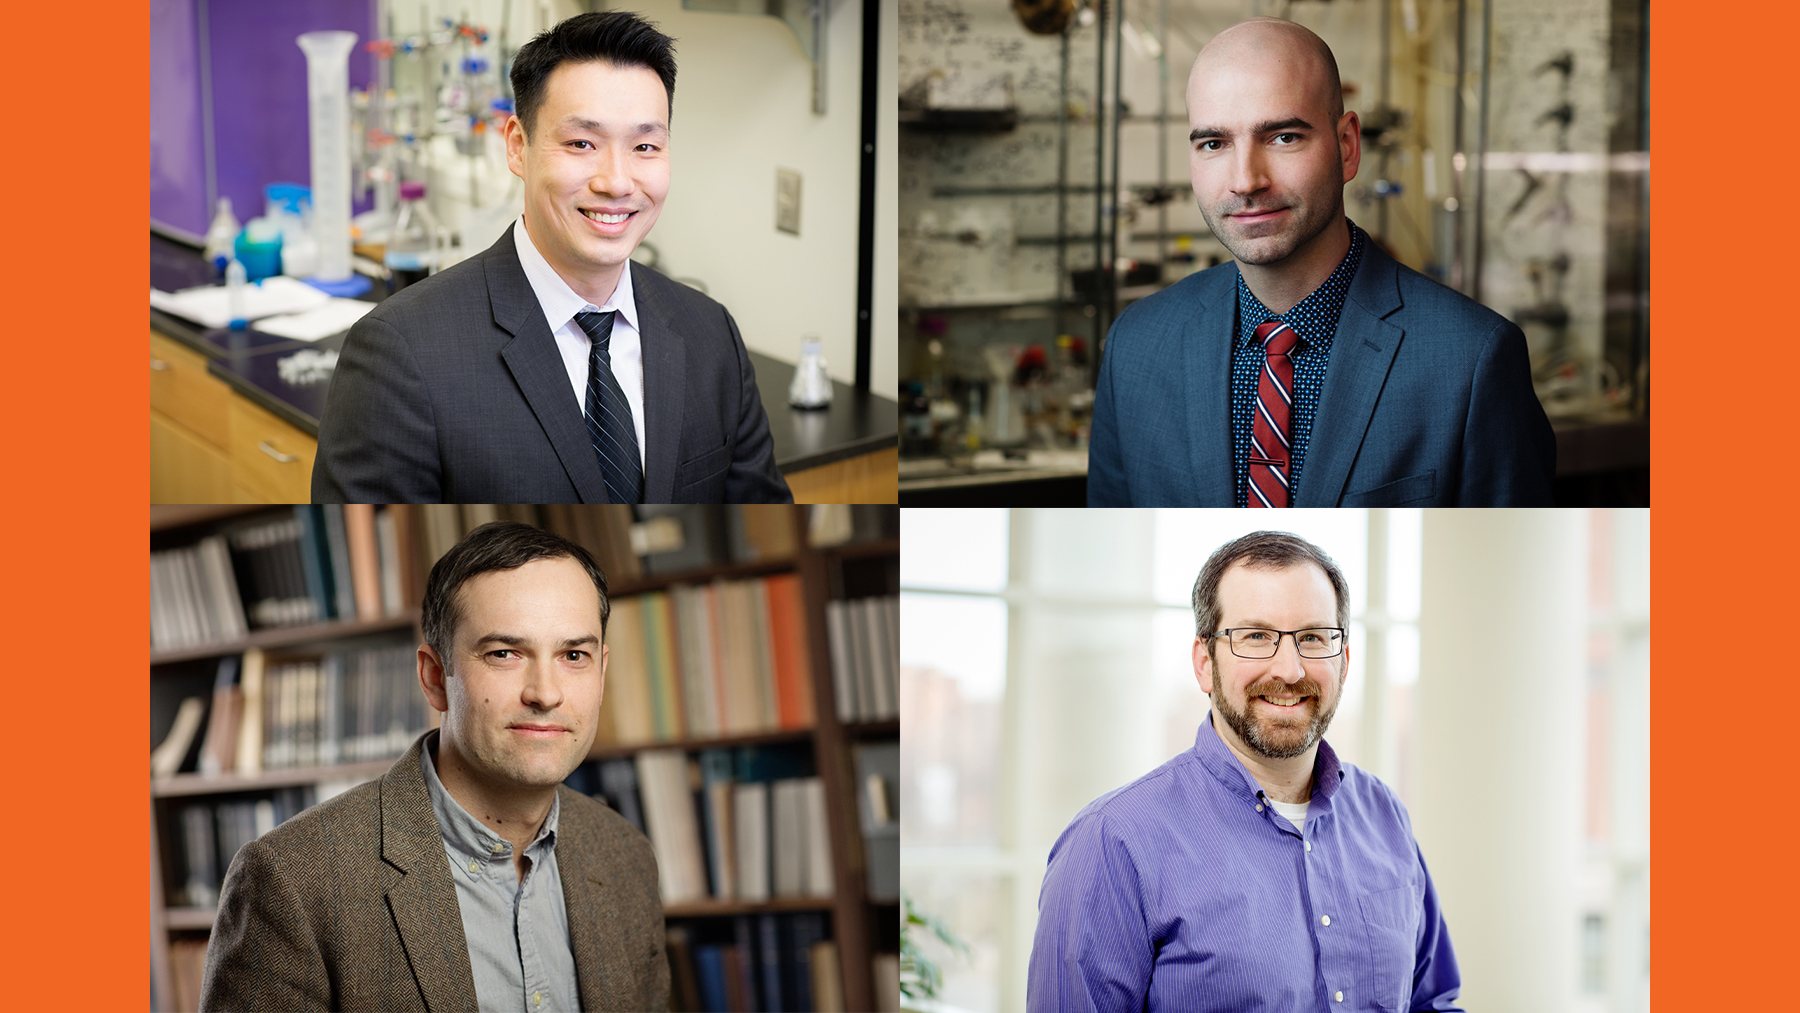 composite image of Joaquin Vieira, Jefferson Chan, David Sarlah, and Josh Vura-Weis, Photots by L. Brian Stauffer